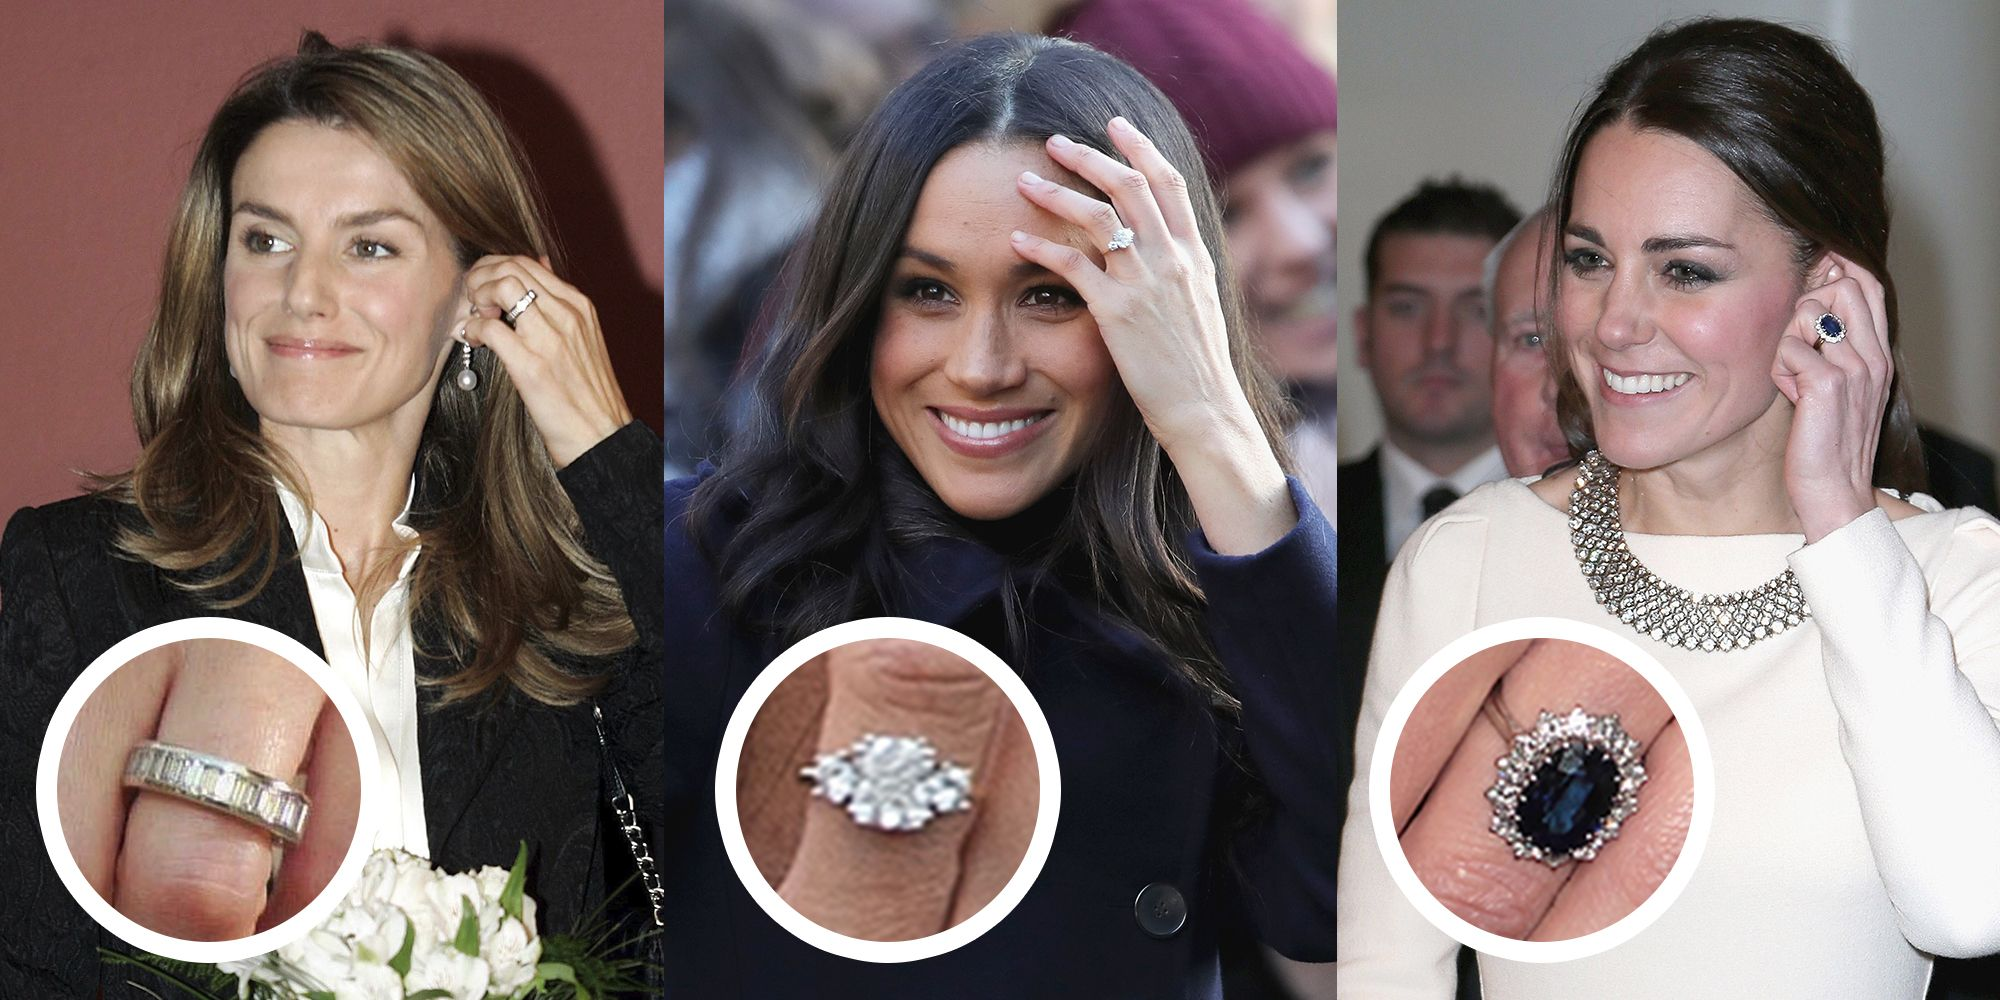 wedding article history rings british throughout vogue engagement royal family